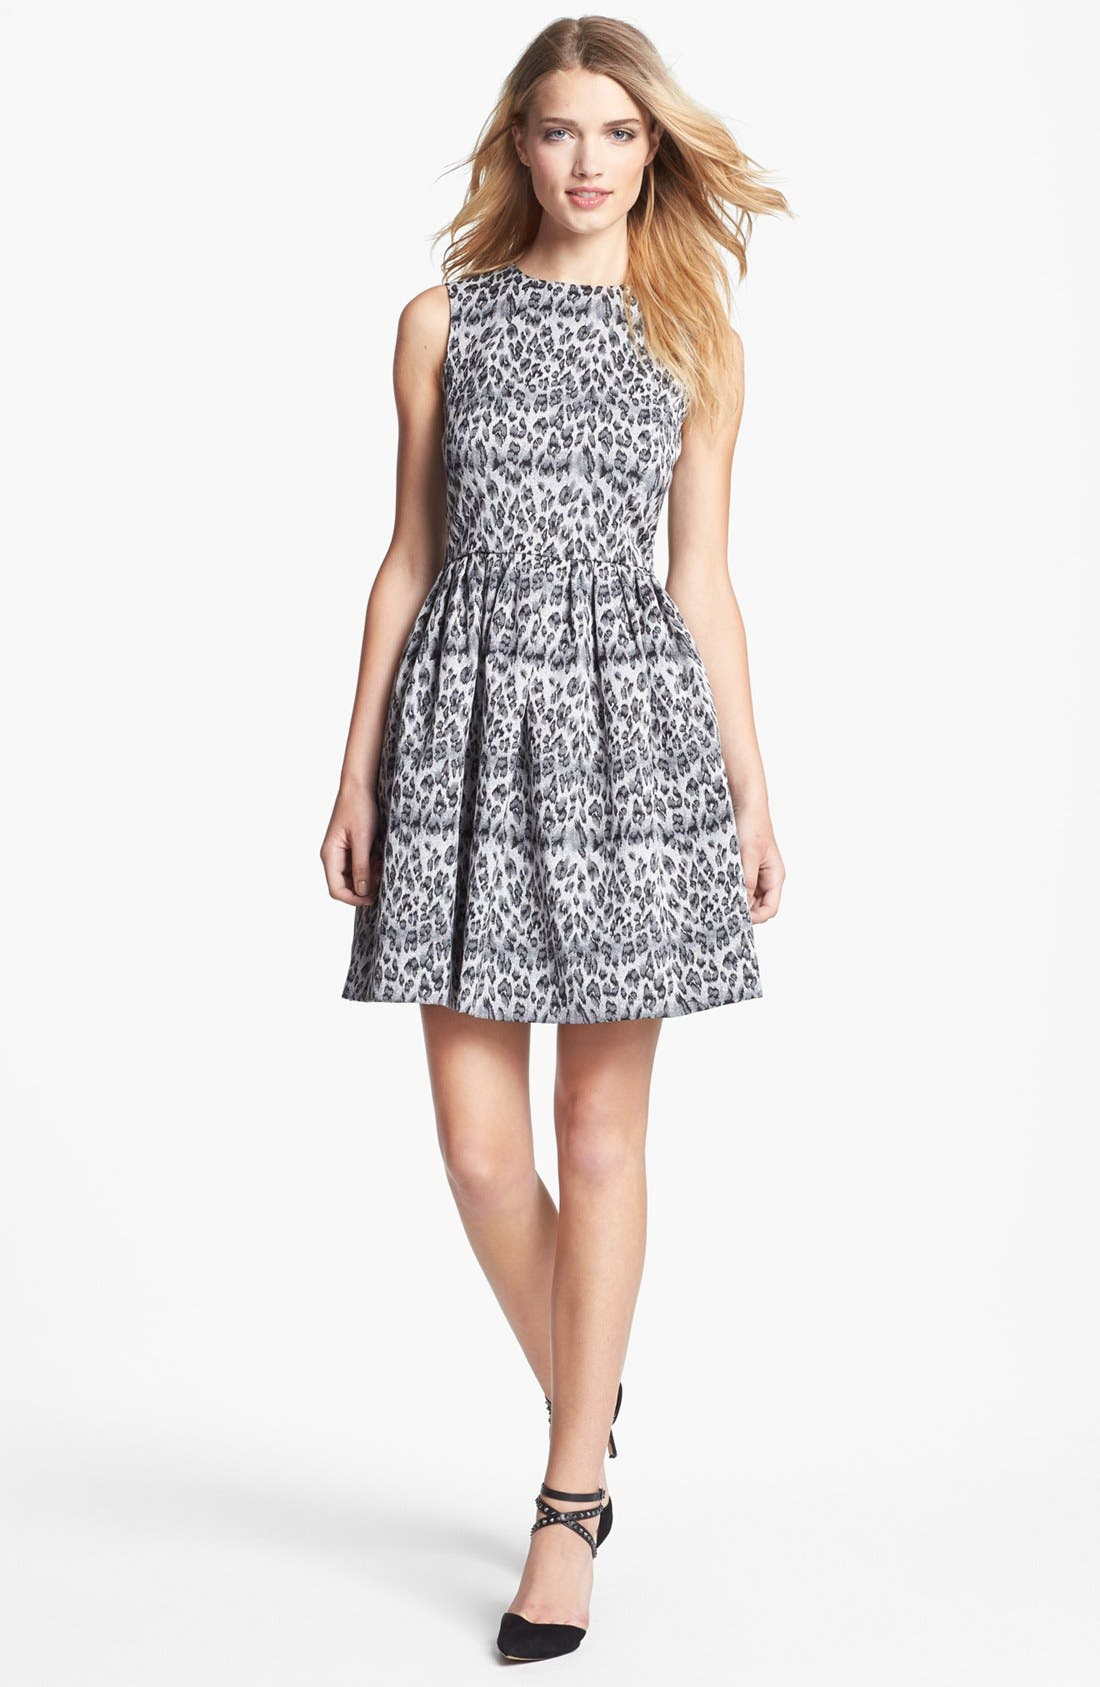 Alternate Image 1 Selected - Taylor Dresses Sleeveless Jacquard Fit & Flare Dress (Regular & Petite)